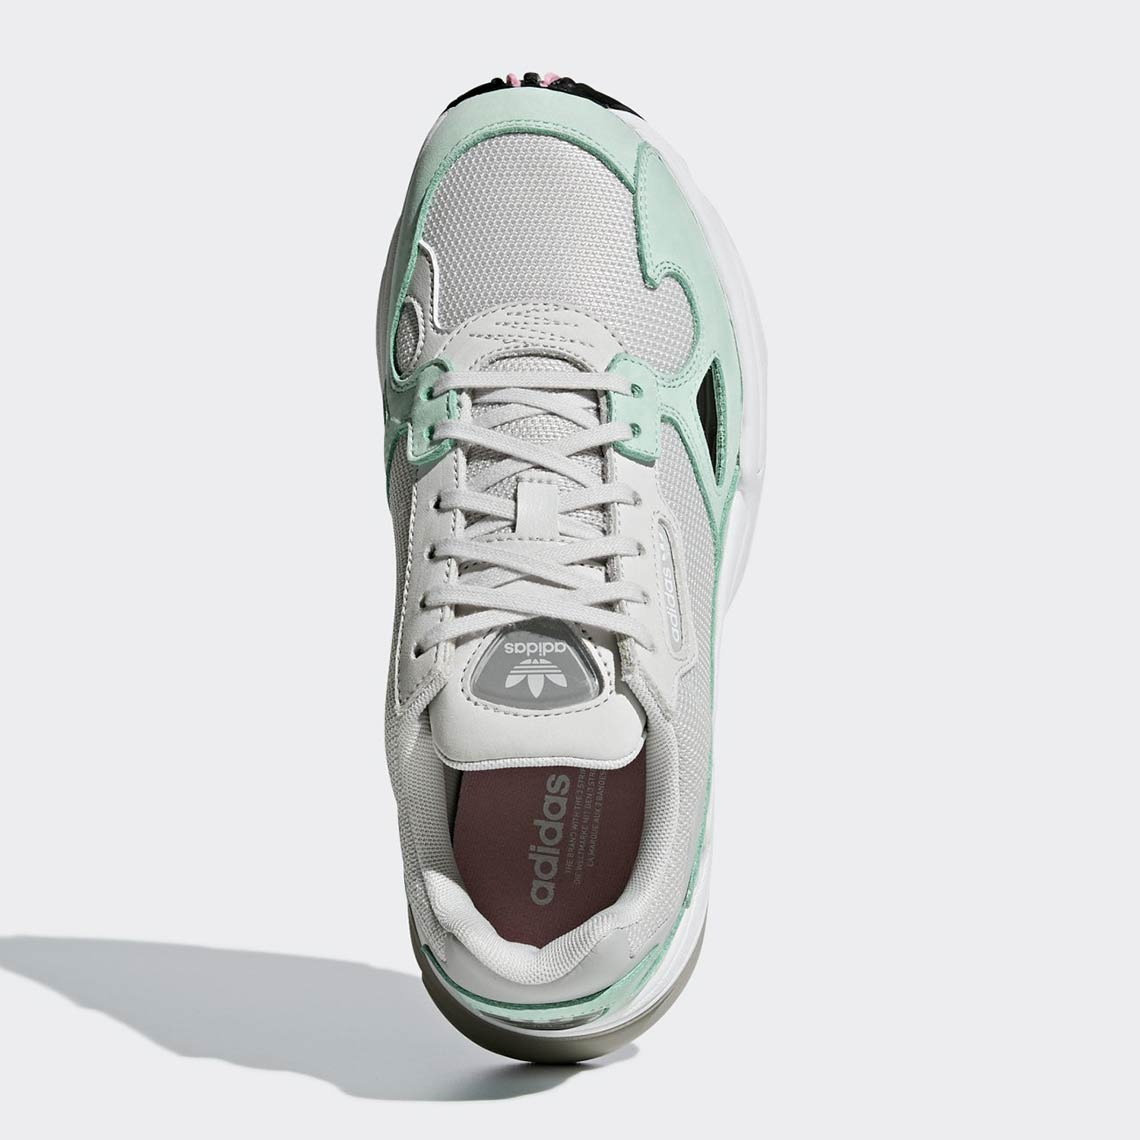 reputable site 293d6 f6ef5 adidas Falcon Wmns Release Date September 6th, 2018 100. Style Code  B28127